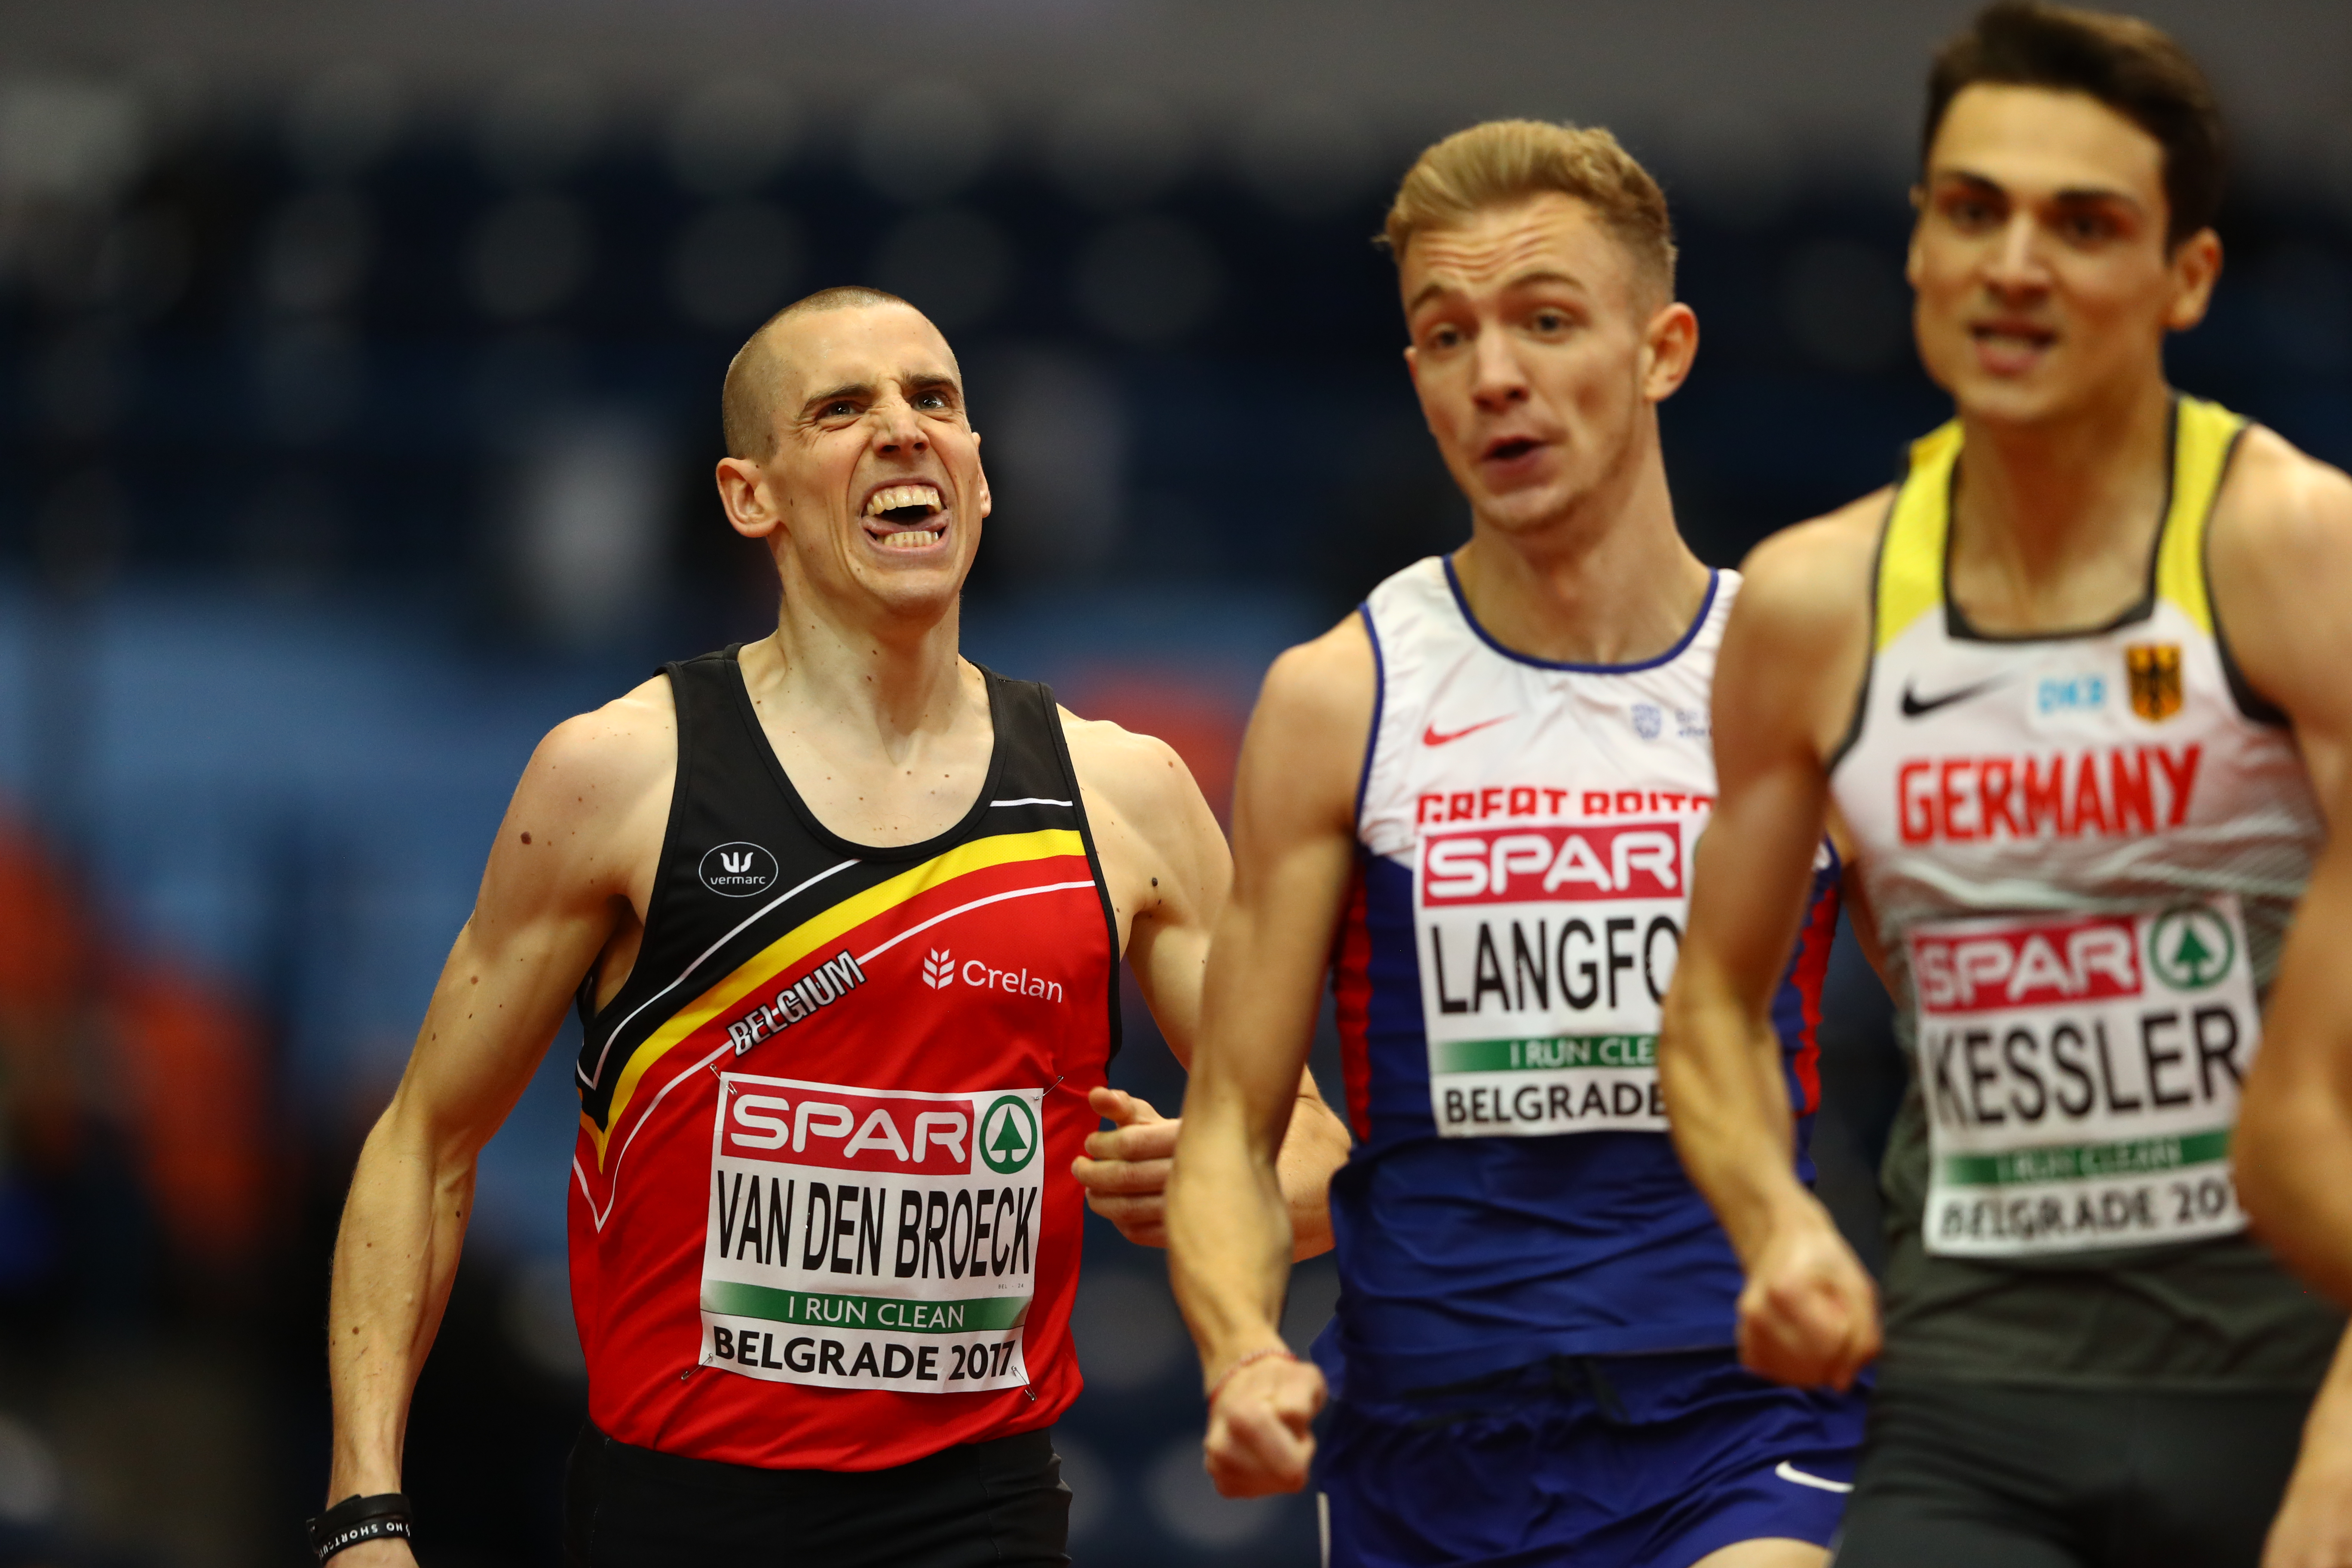 Jan van den Broeck of Belgium grimaces during the 800m heats, European Indoor Championships, Belgrade, March 2017